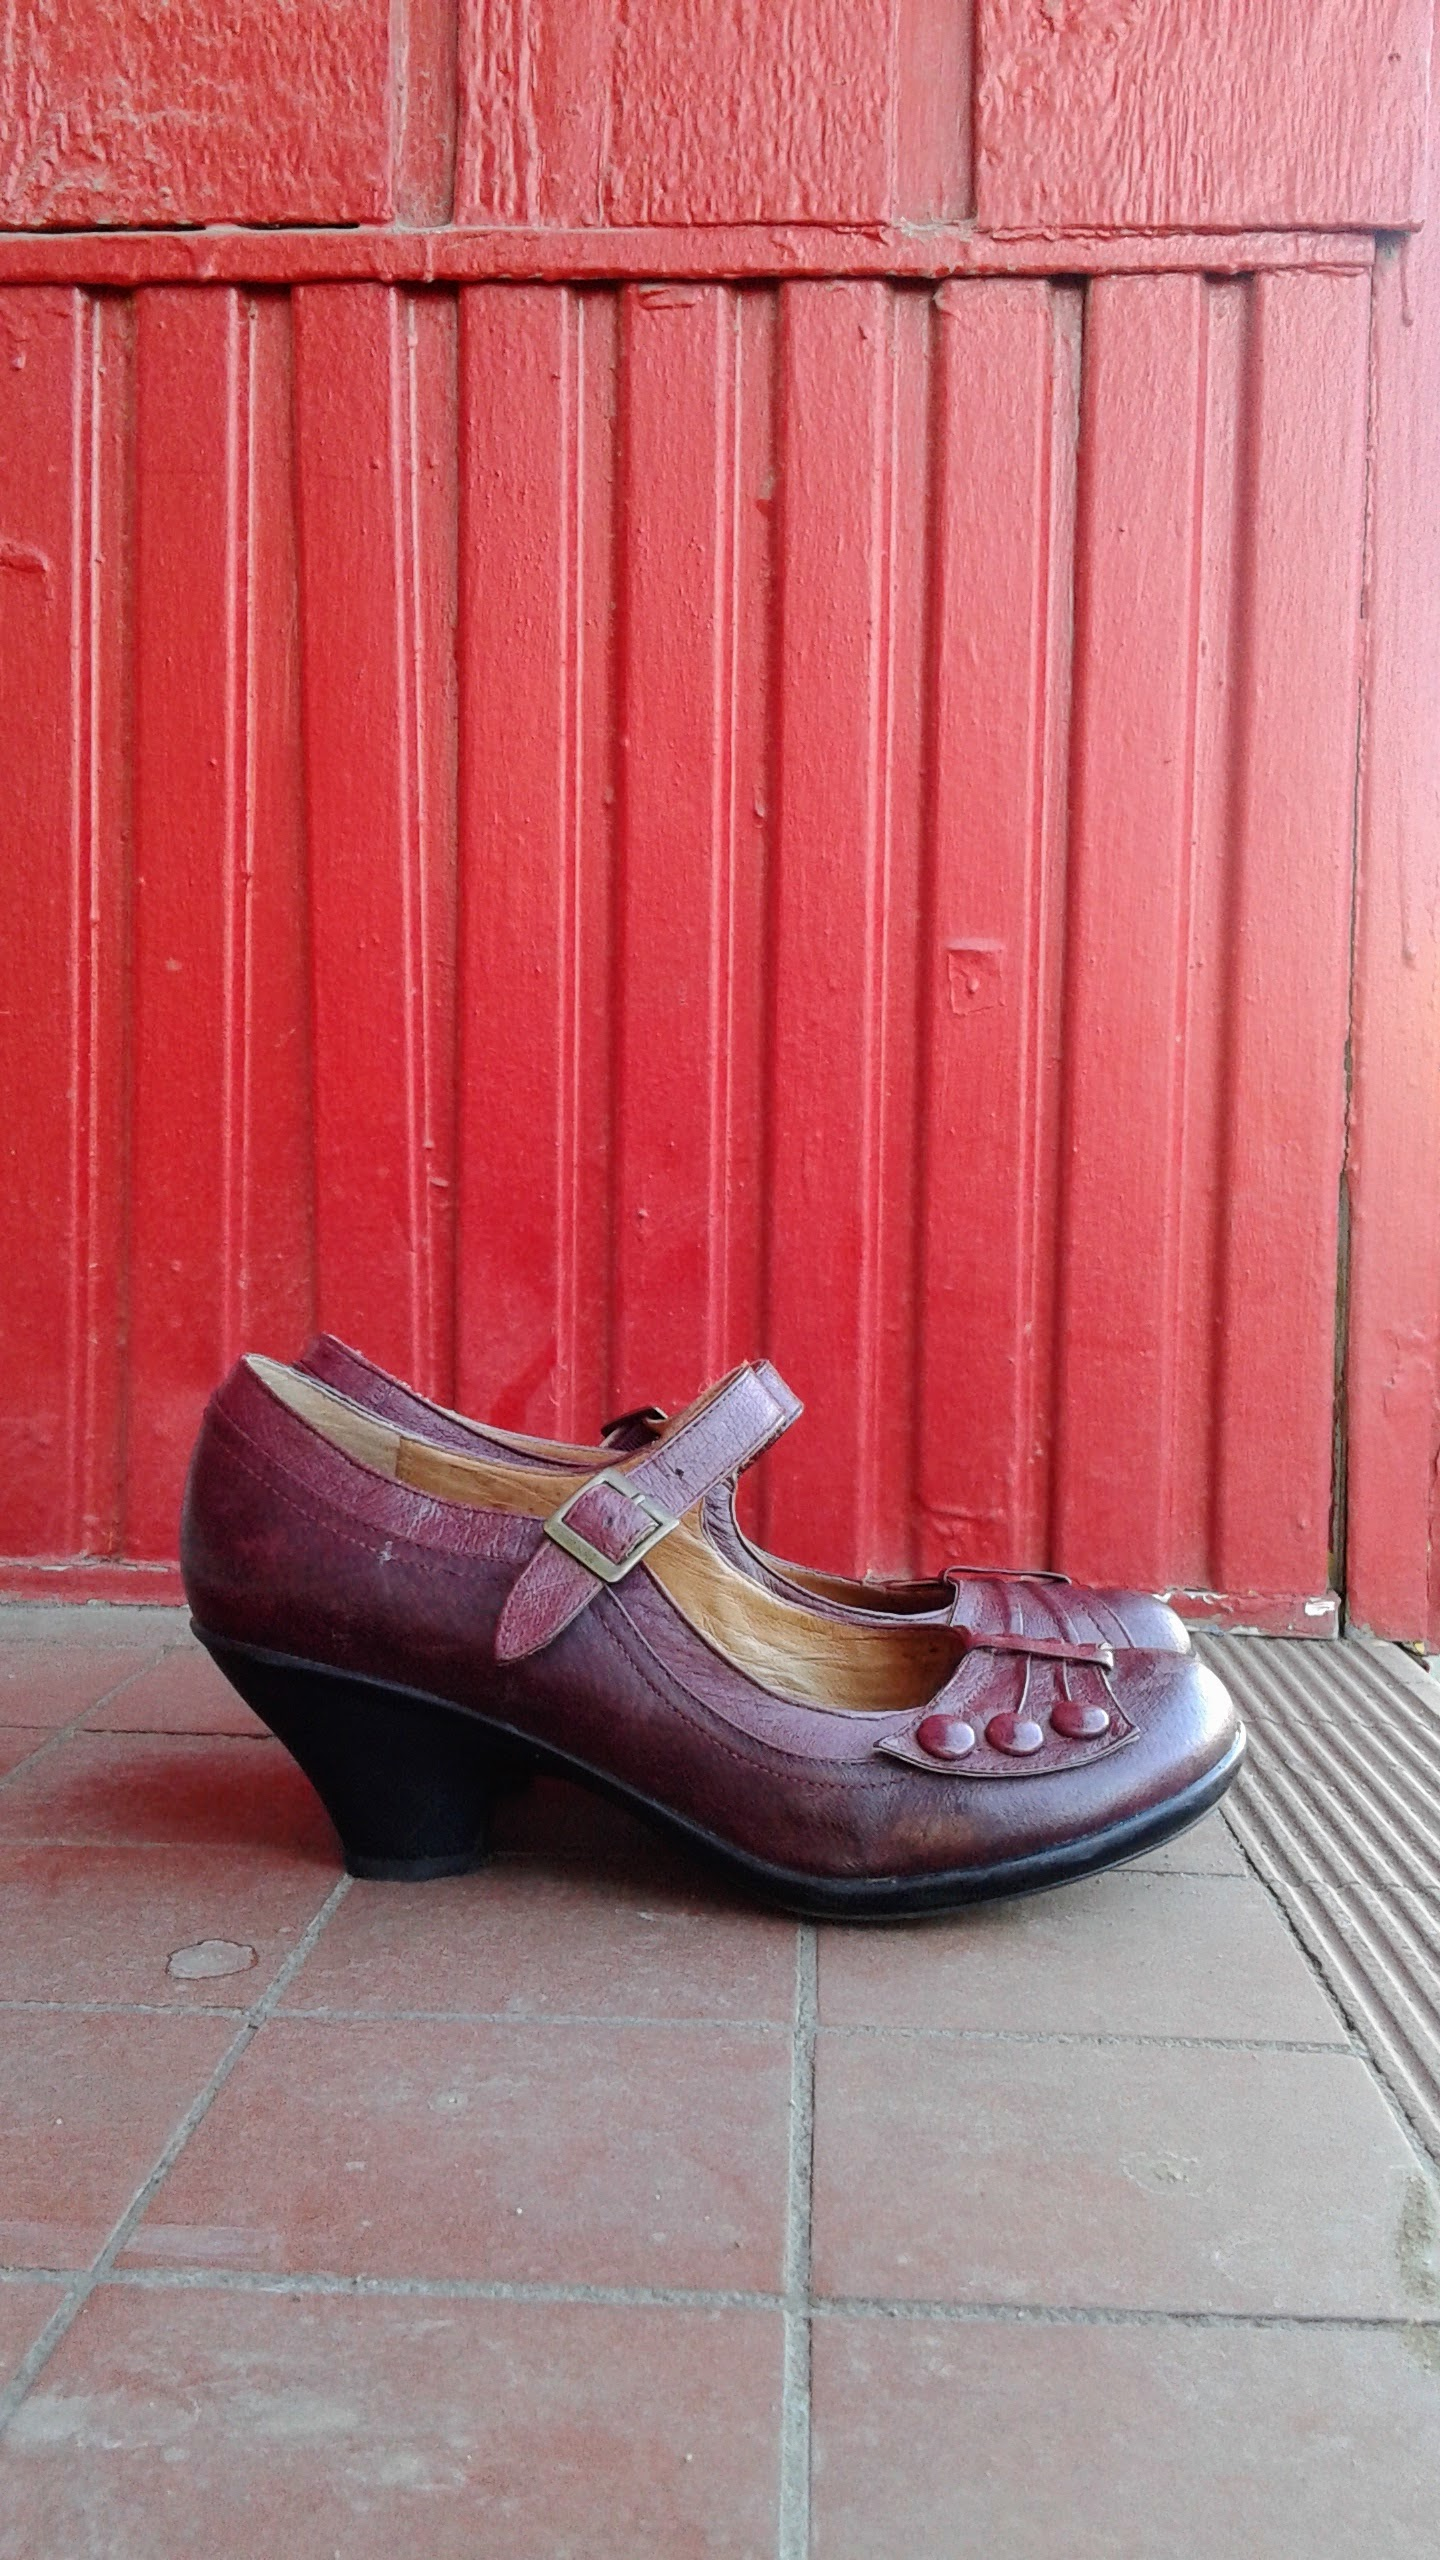 Miz Mooz shoes; S8.5, $45